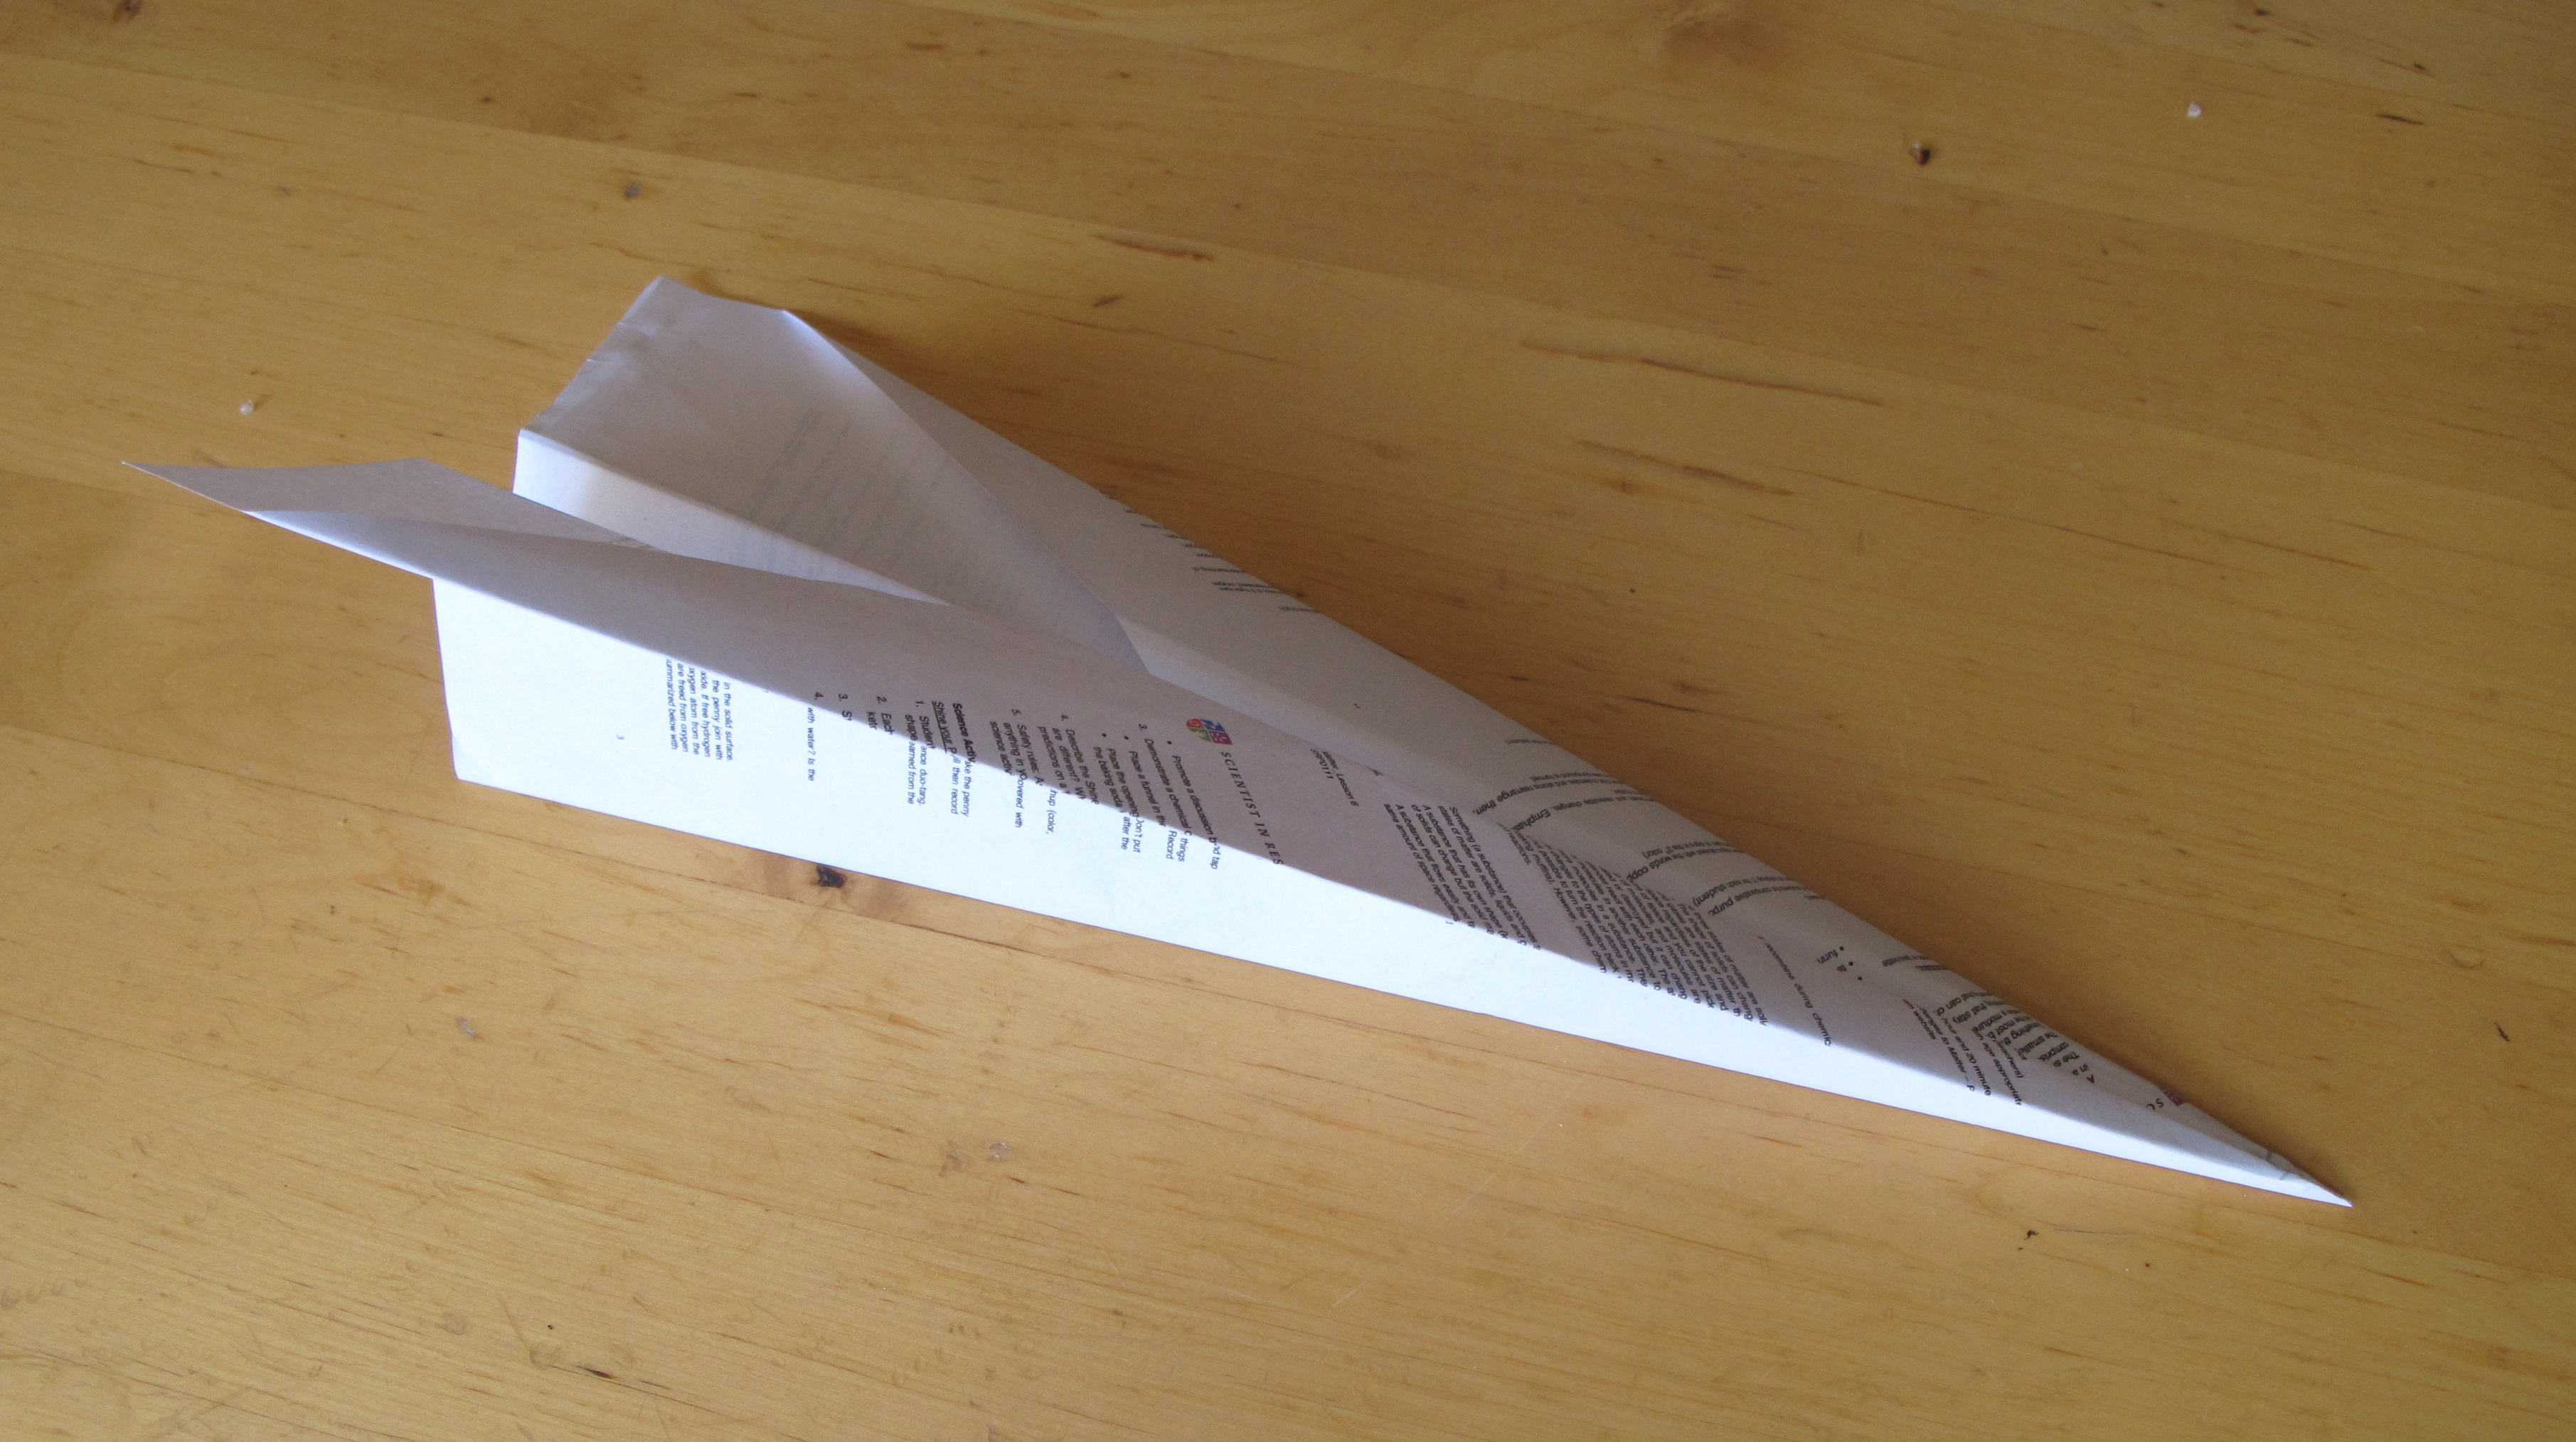 aeroplane physics essay Investigate whether the distance a paper plane flies is affected by increasing how much paper airplanes: why flaps and folds matter forces, drag, physics.